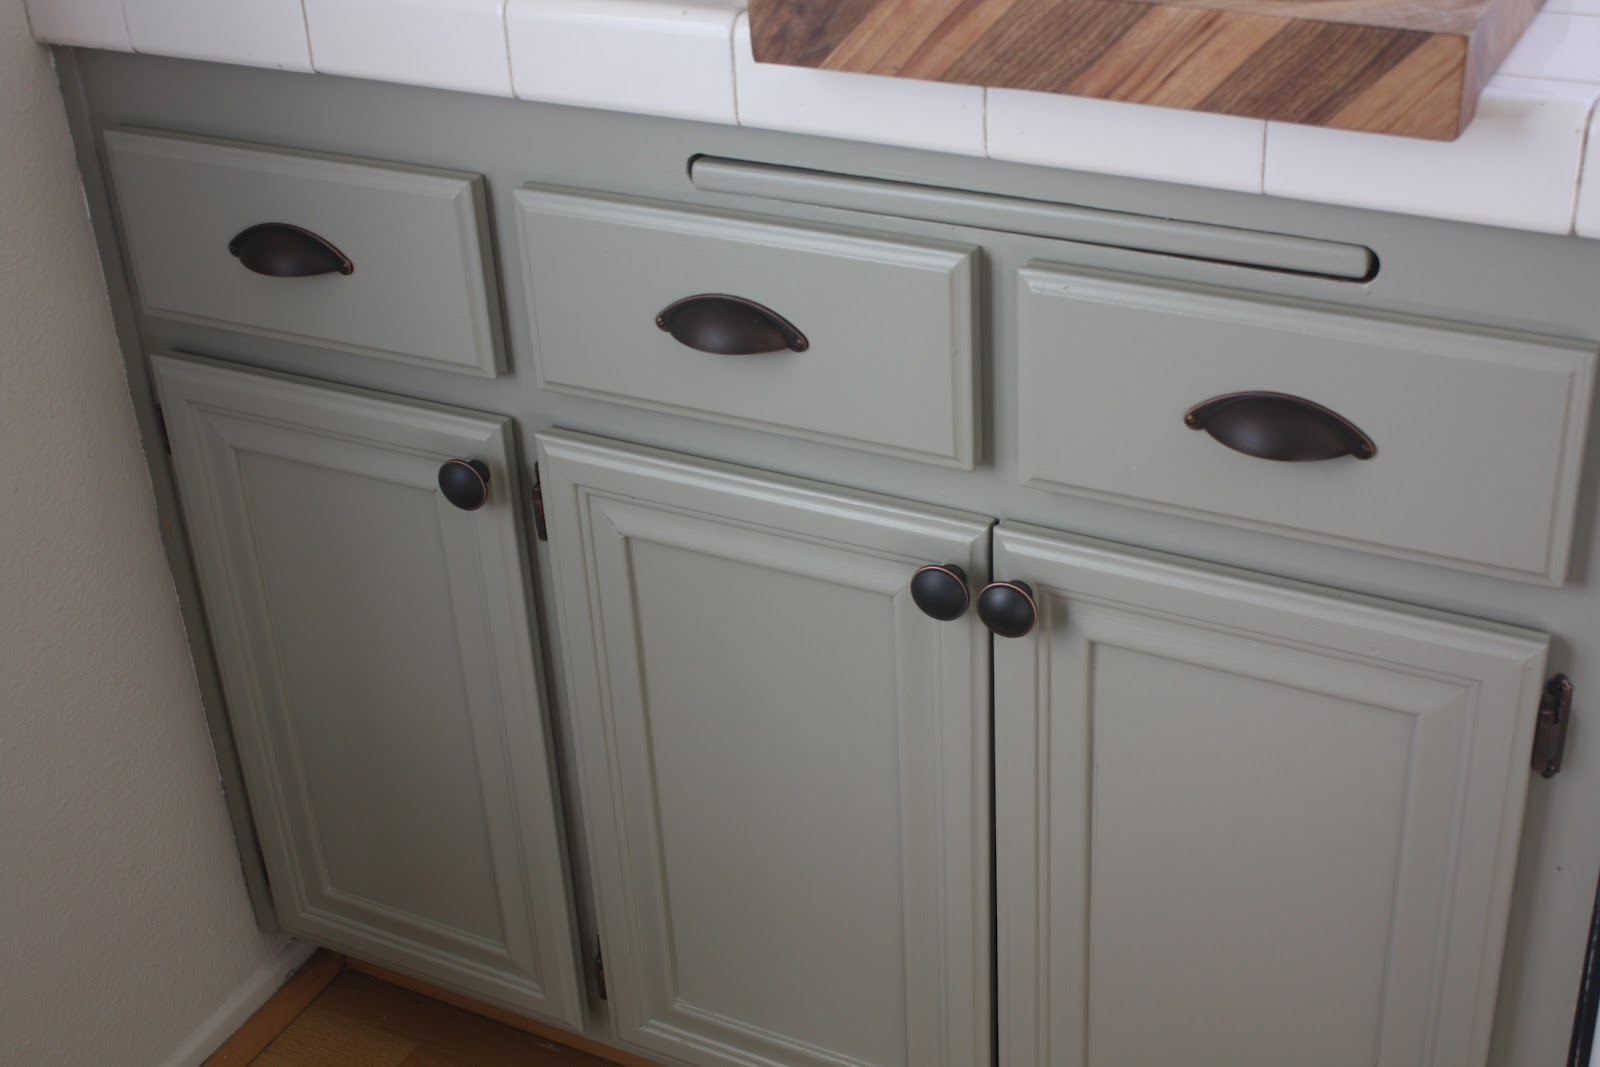 my new kitchen martha stewart kitchen cabinets One of my very favorite pieces in the kitchen is an antique plate that I love I also have a special love for my cutting board